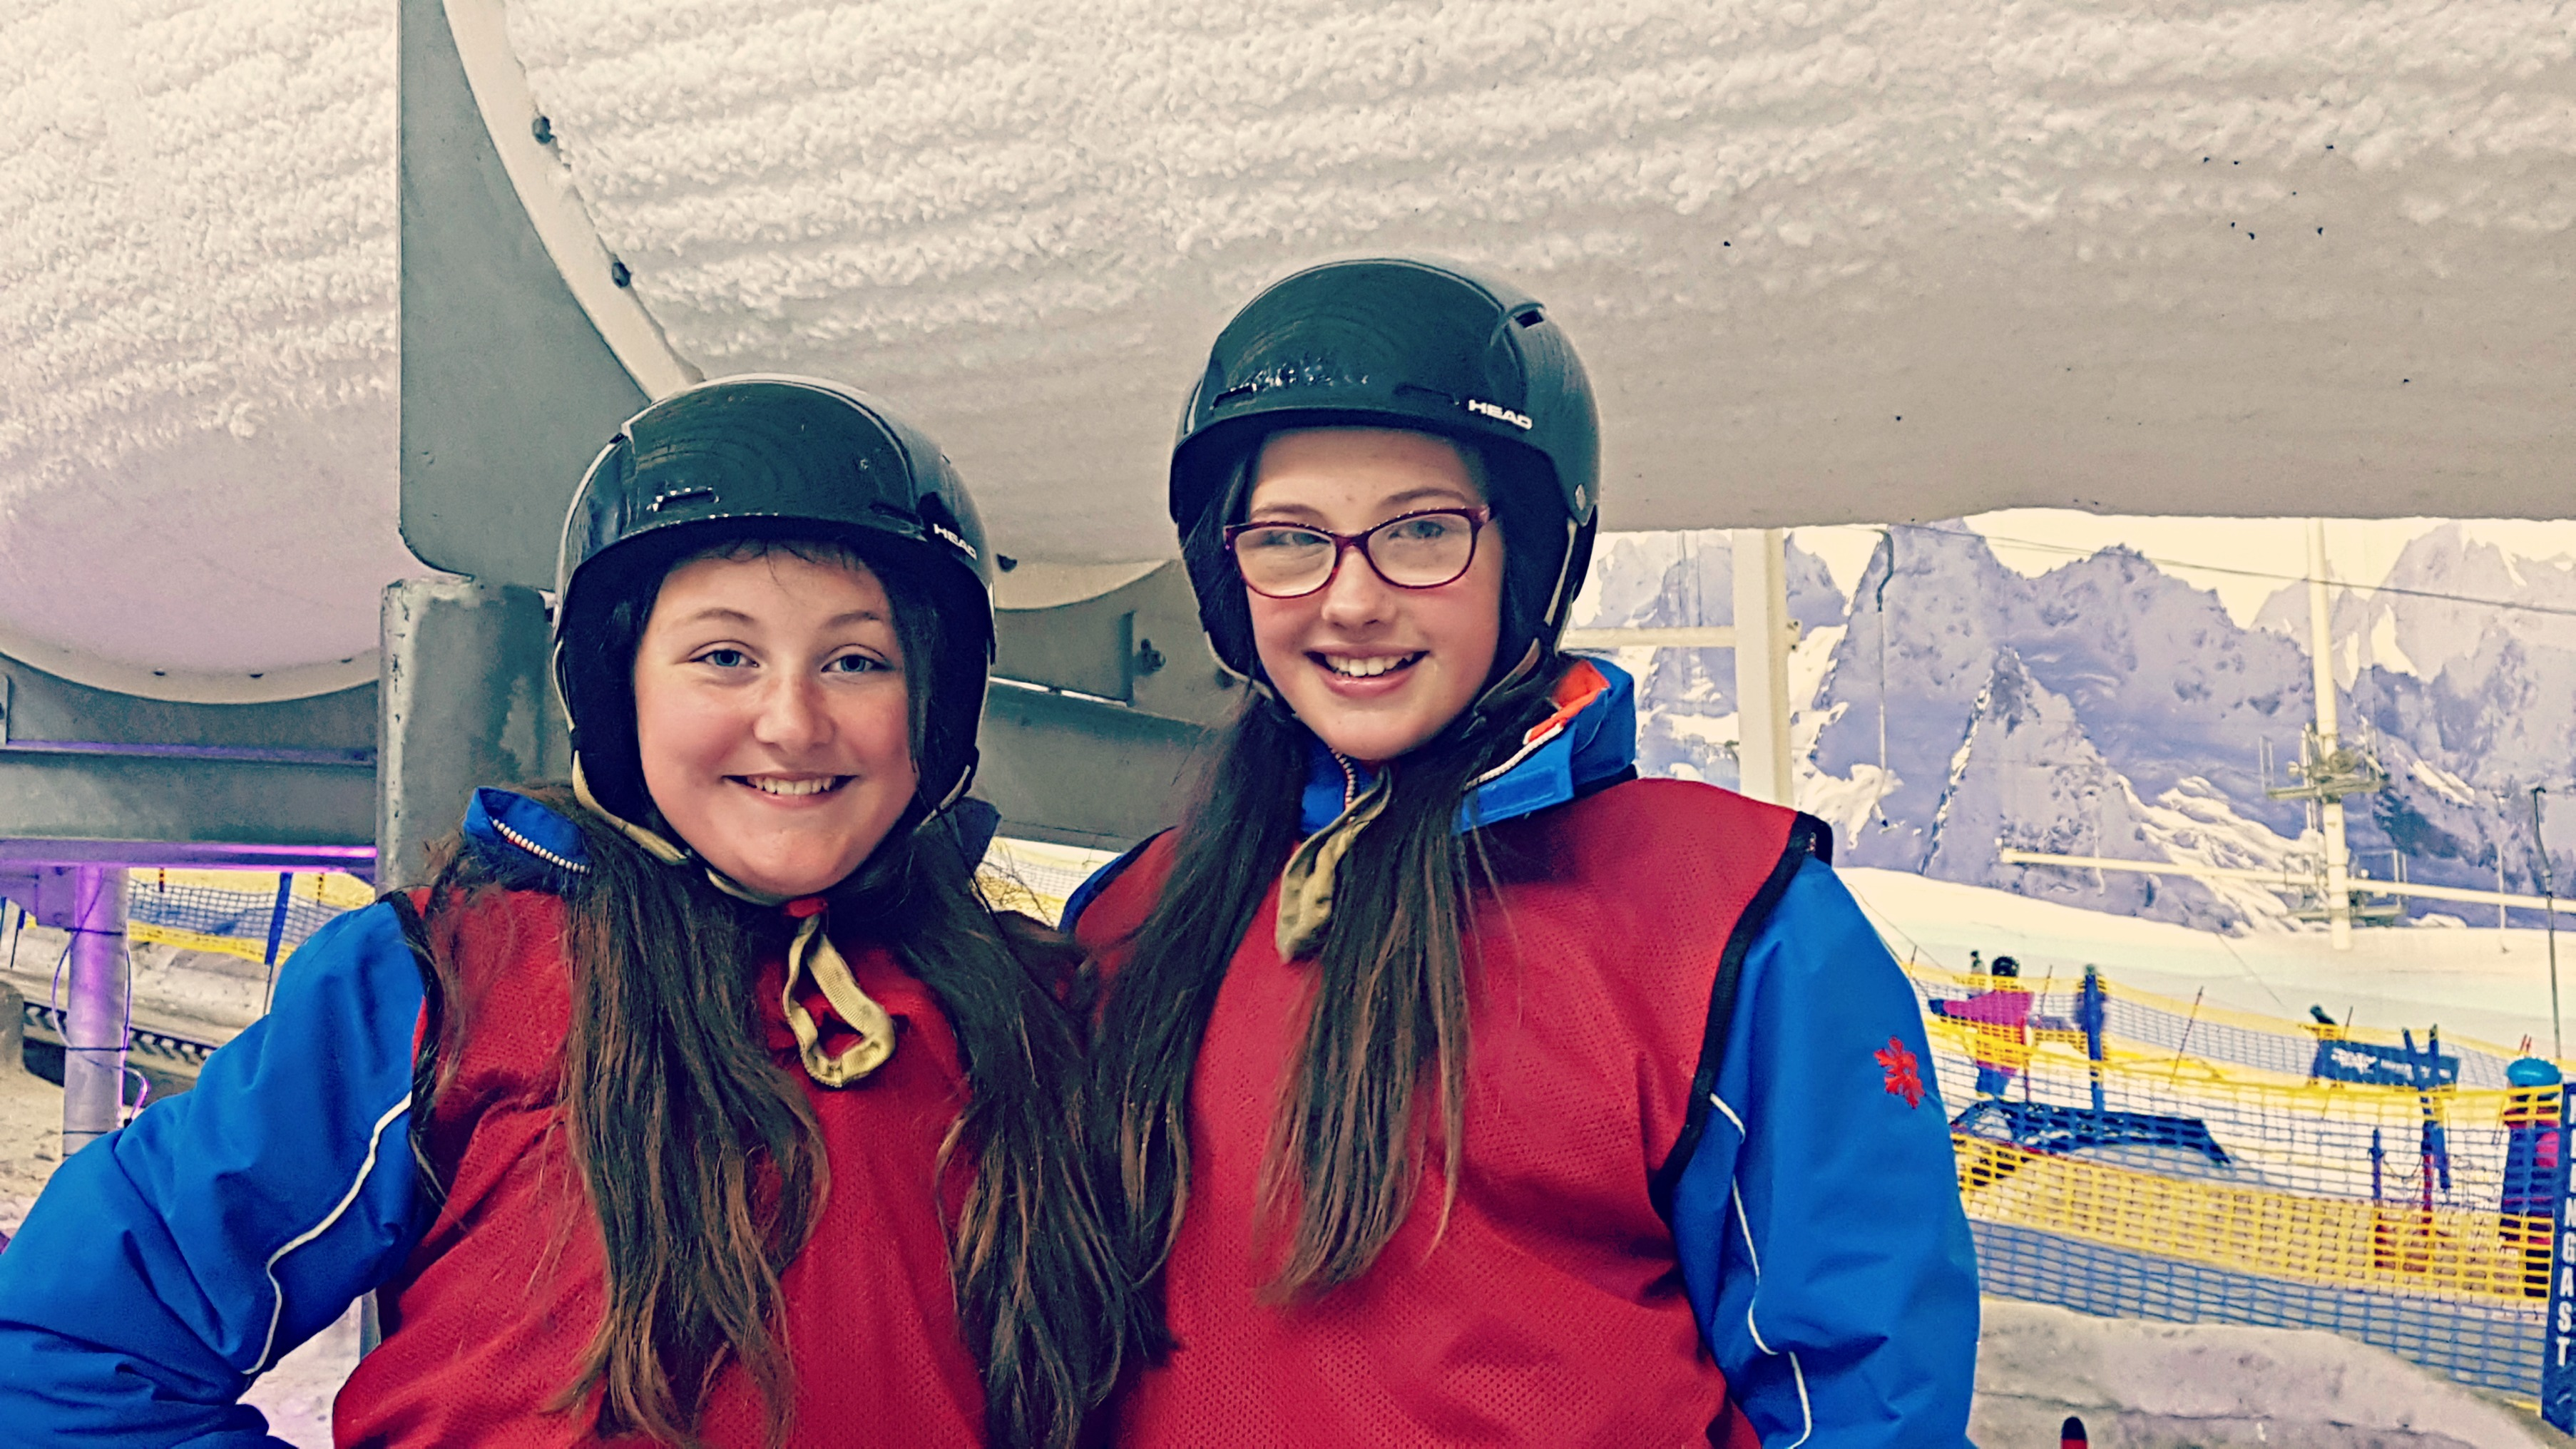 2 girls in helmets and ski wear a an indoor ski park